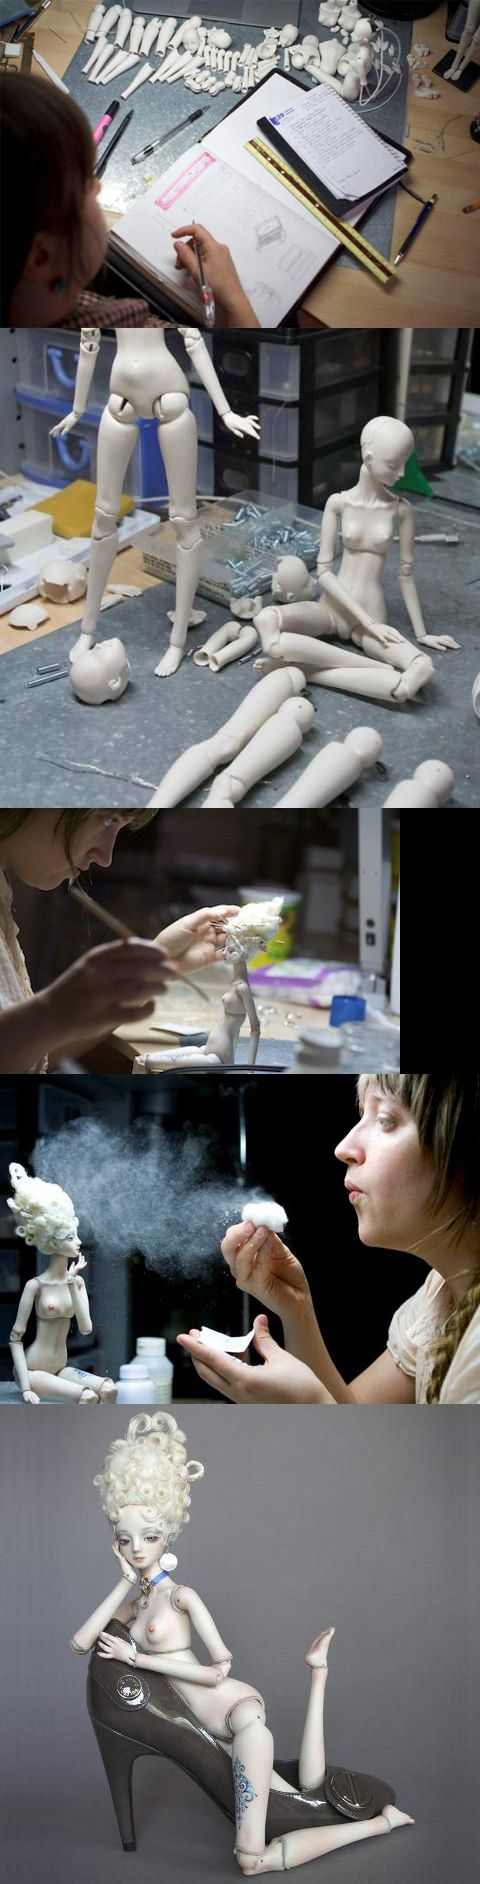 Marina Bychkova and the process involved in her amazing dolls